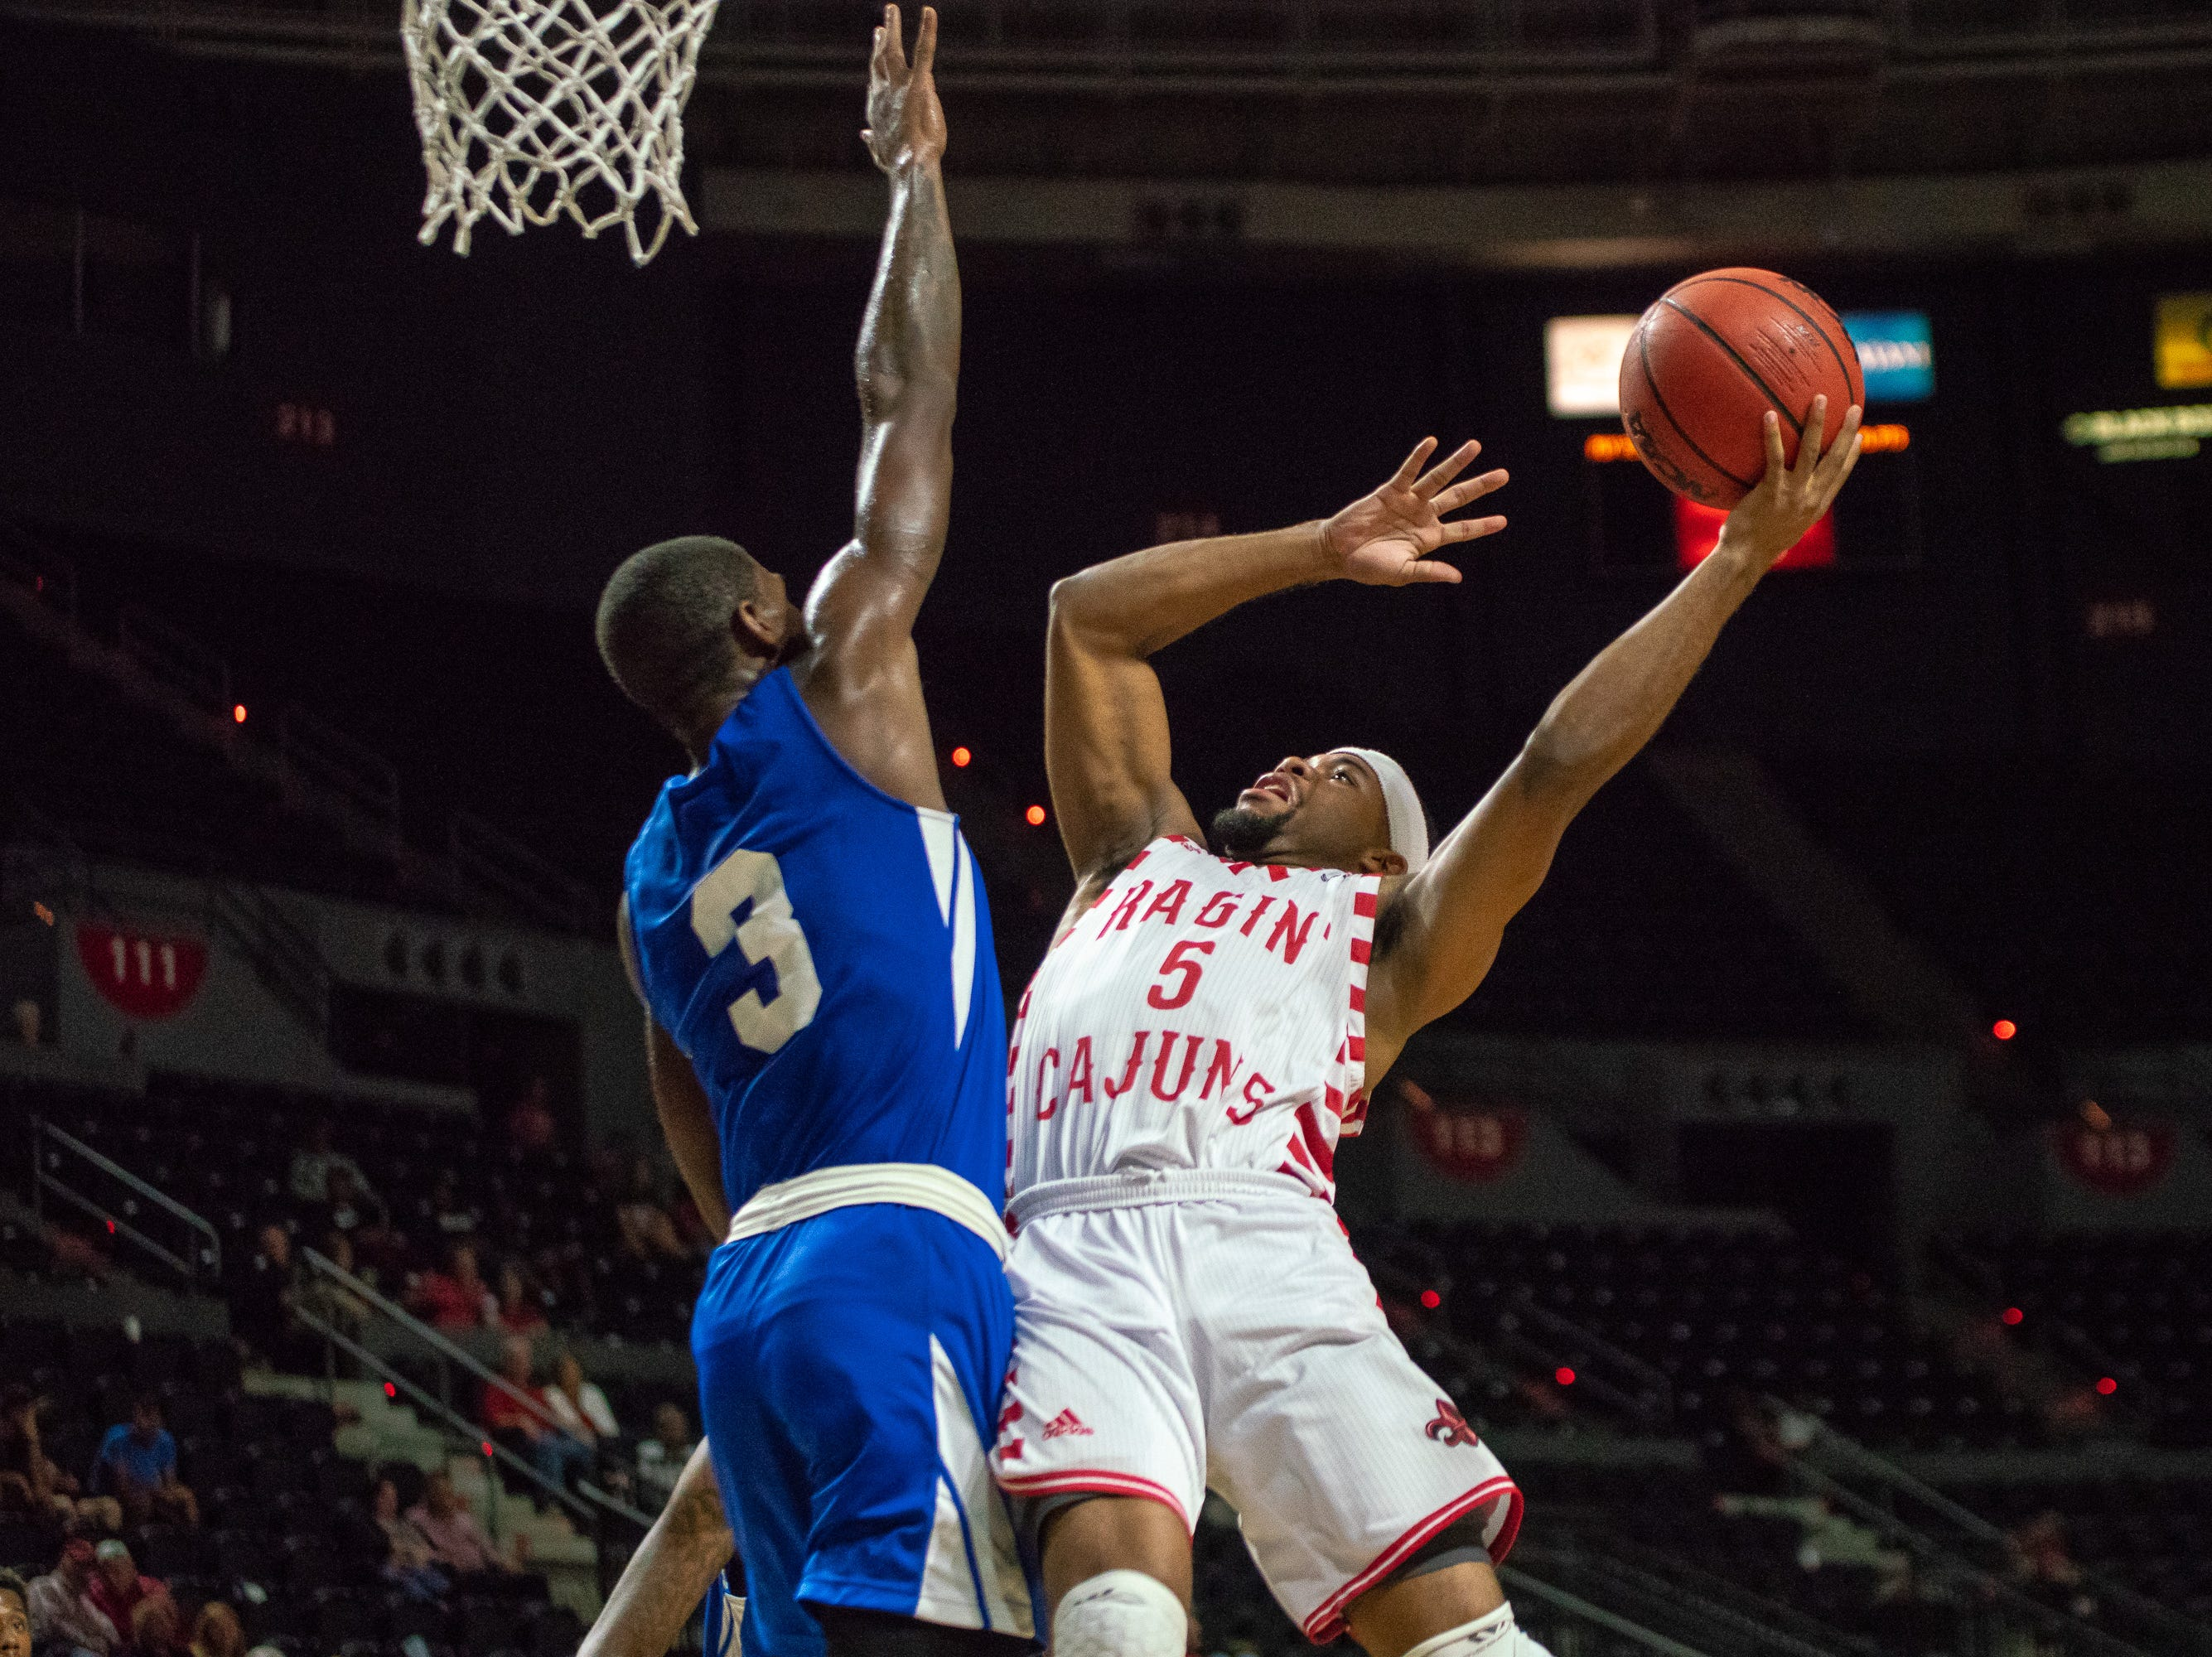 UL's Trajan Wesley scores with a layup as the Ragin' Cajuns take on the University of the Virgin Islands Buccaneers at the Cajundome on Nov. 6, 2018.